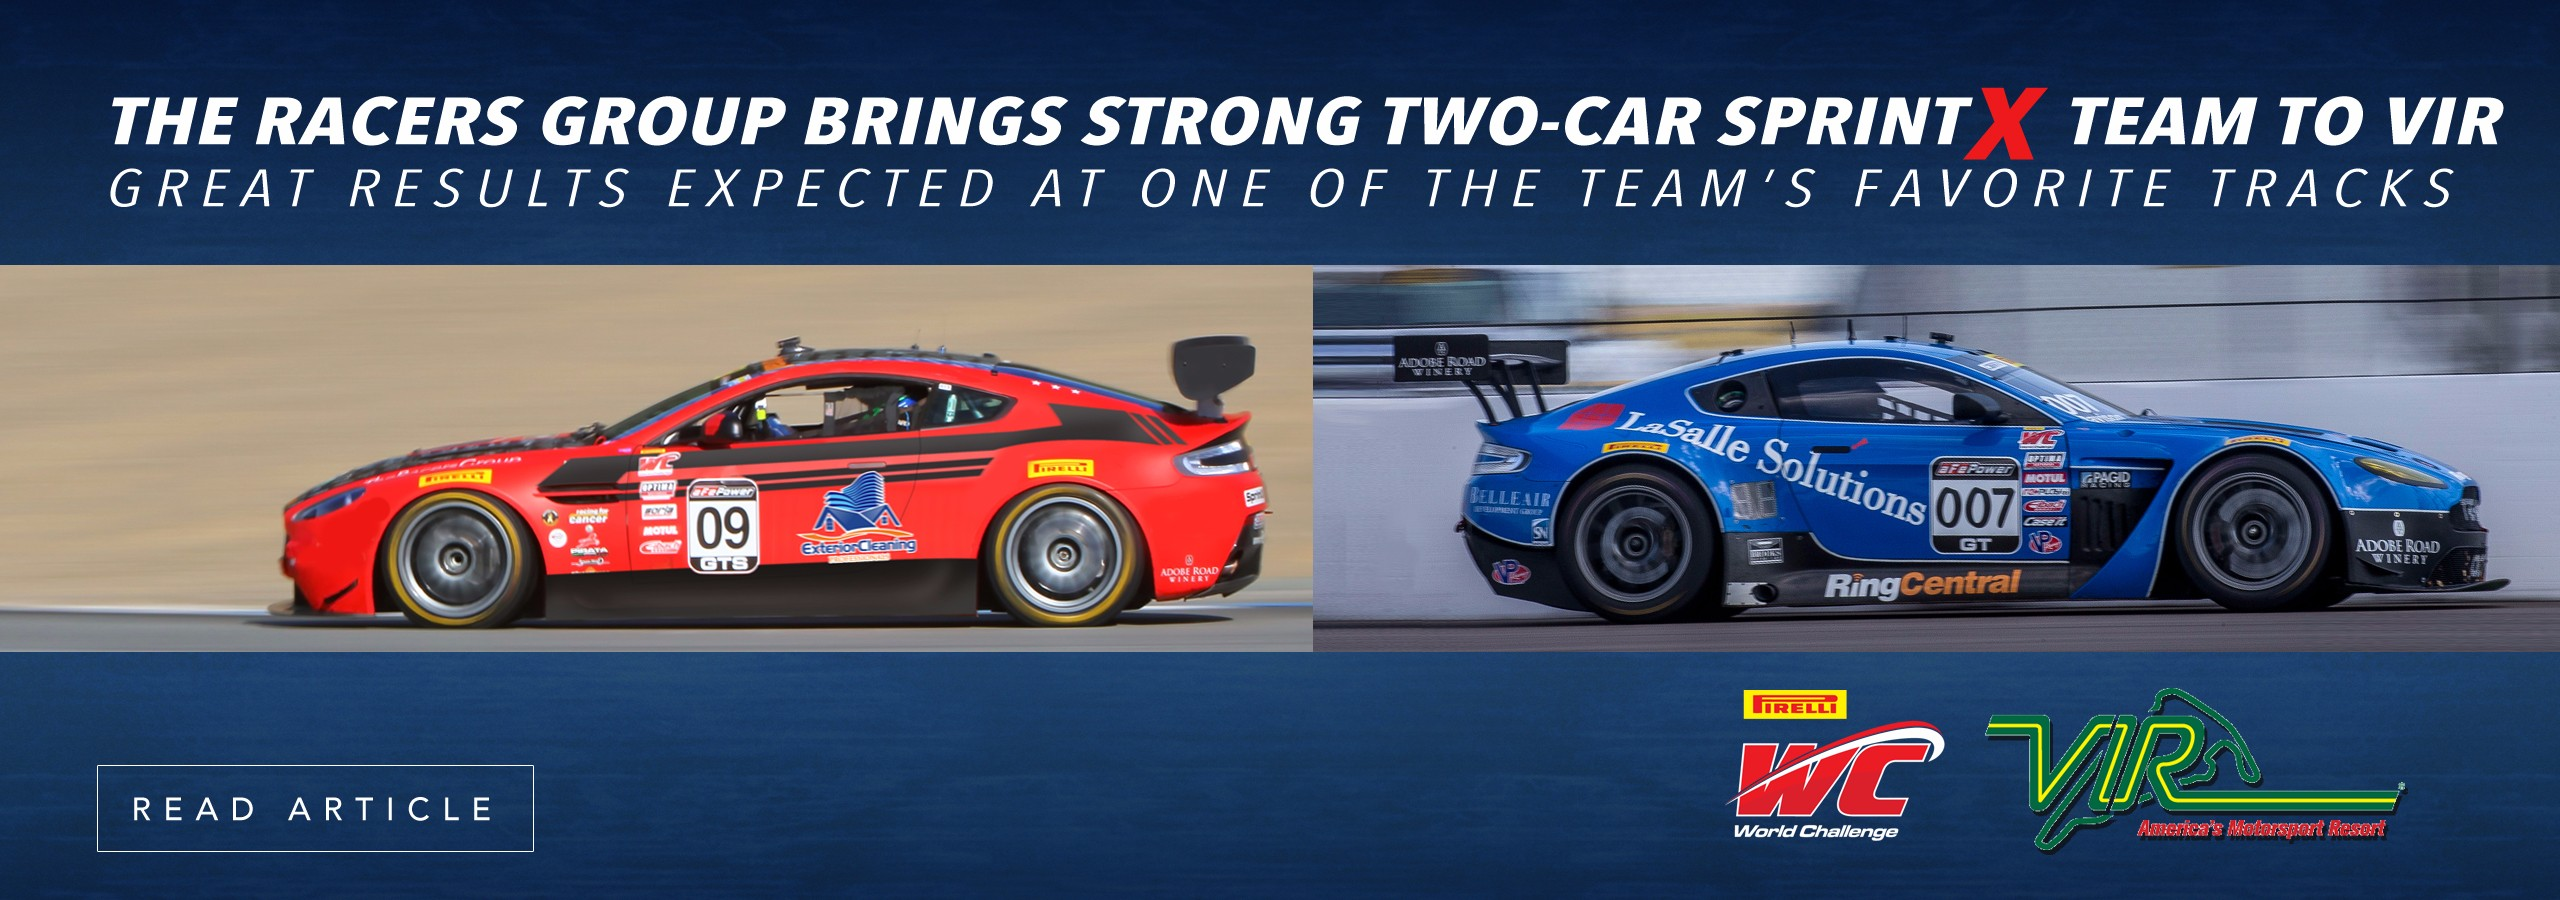 THE RACERS GROUP BRINGS STRONG TWO-CAR SPRINTX TEAM TO VIR Great results expected at one of the team's favorite tracks